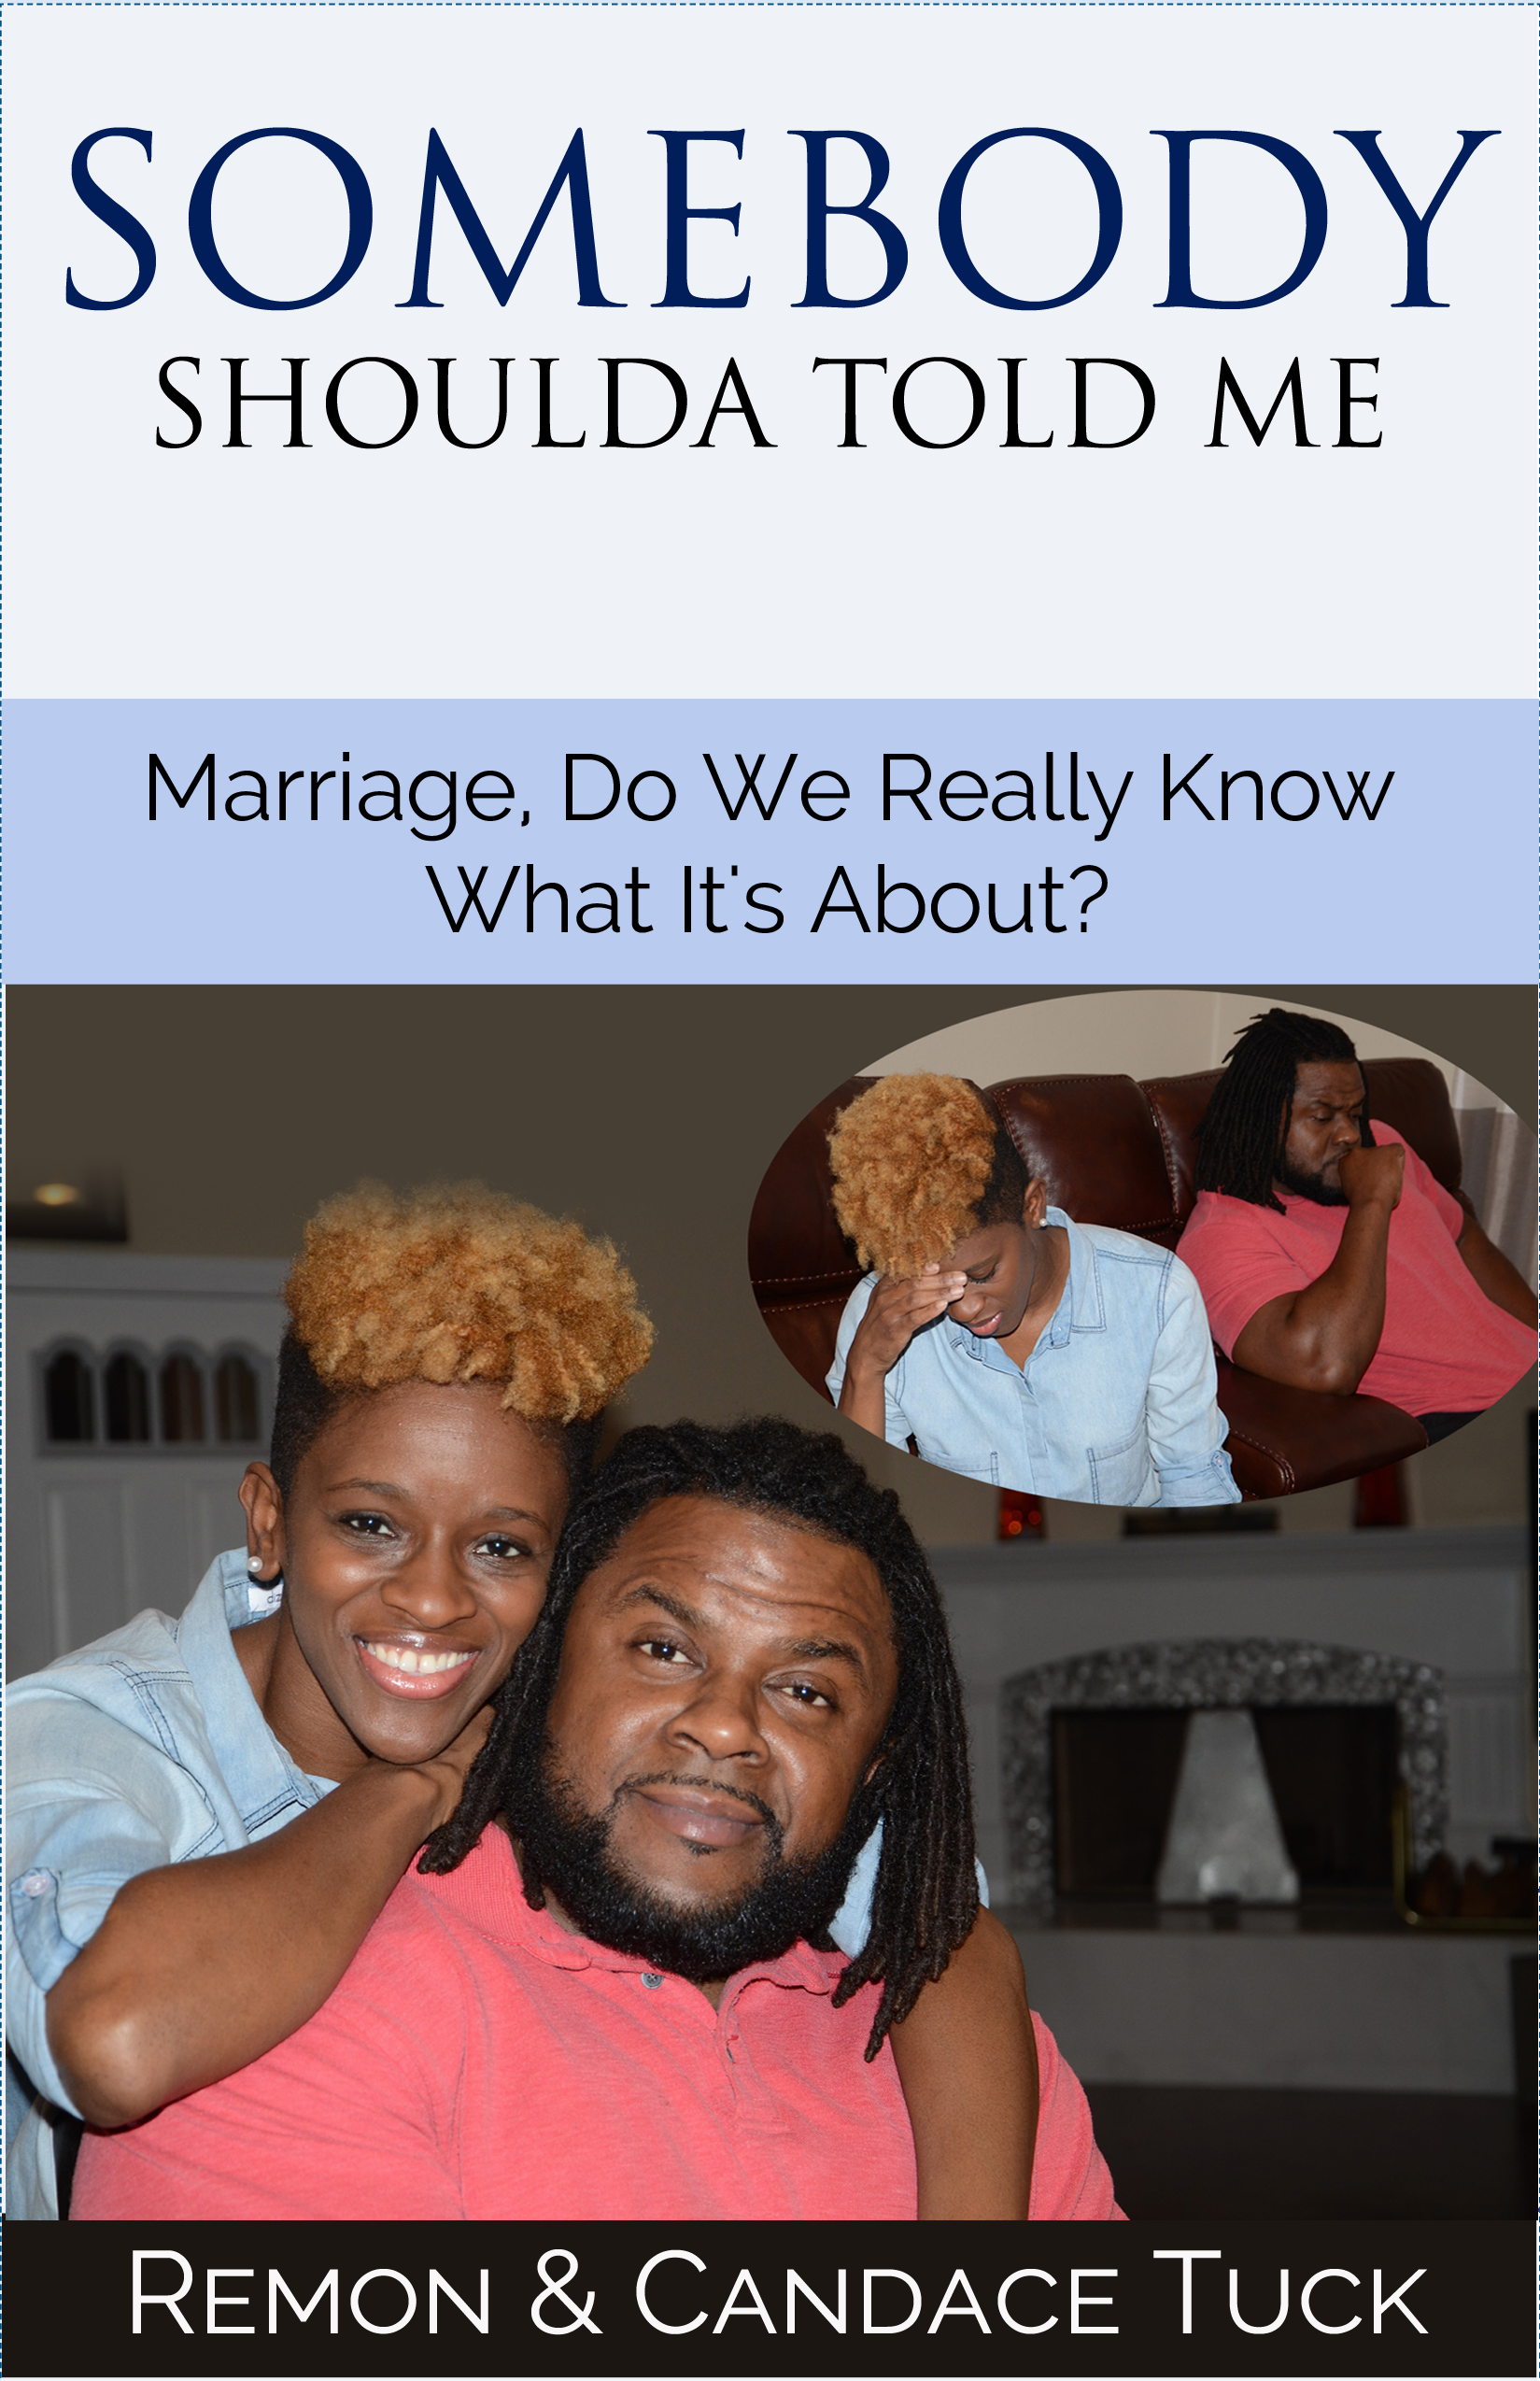 Do you want a successful marriage? You need this book! Get it from www.Lulu.com, Amazon, and B&N